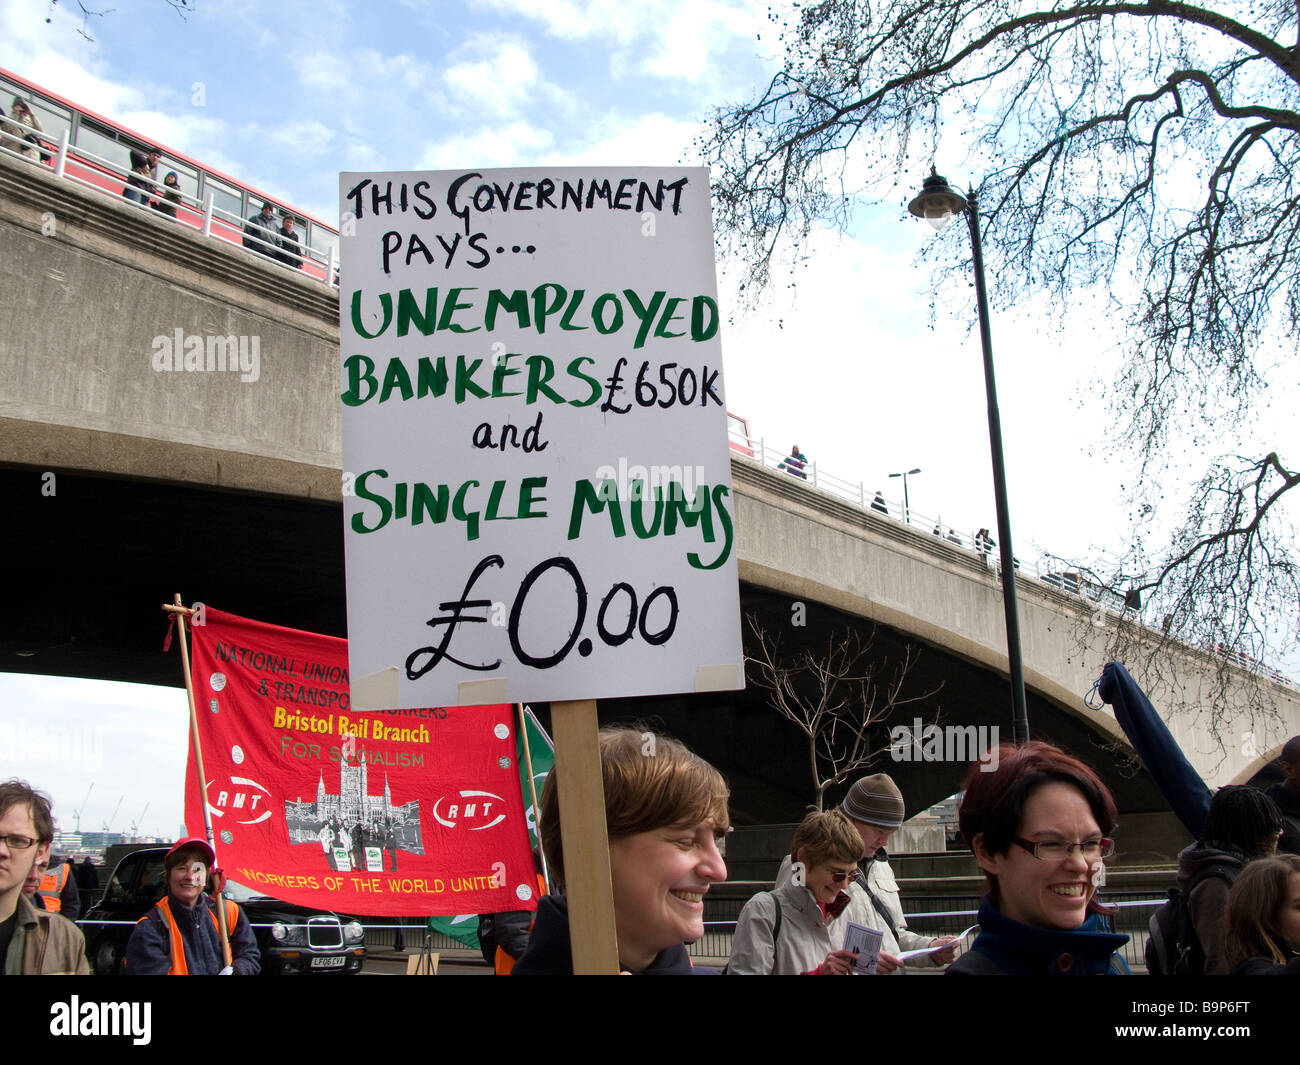 G20 protest march in central London, 28/03/09. - Stock Image